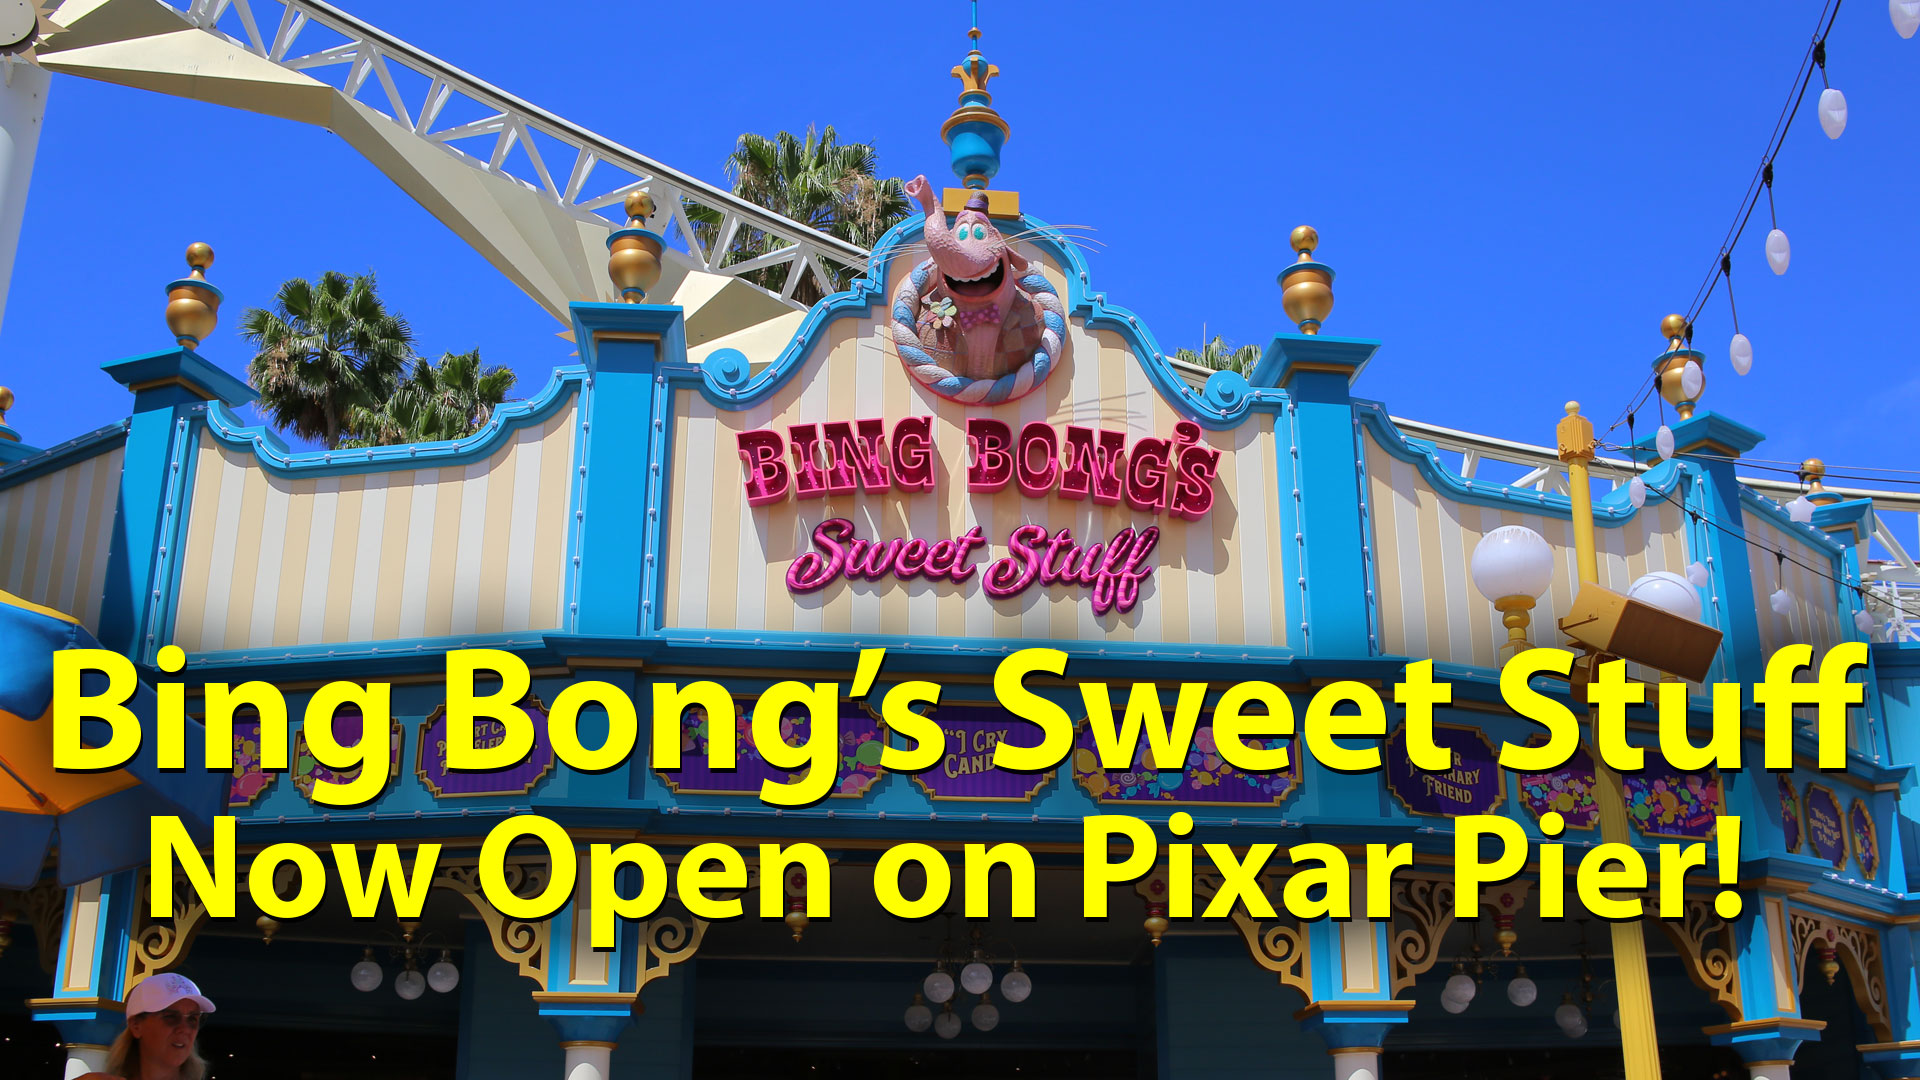 Bing Bong's Sweet Stuff Now Open on Pixar Pier at Disneyland Resort